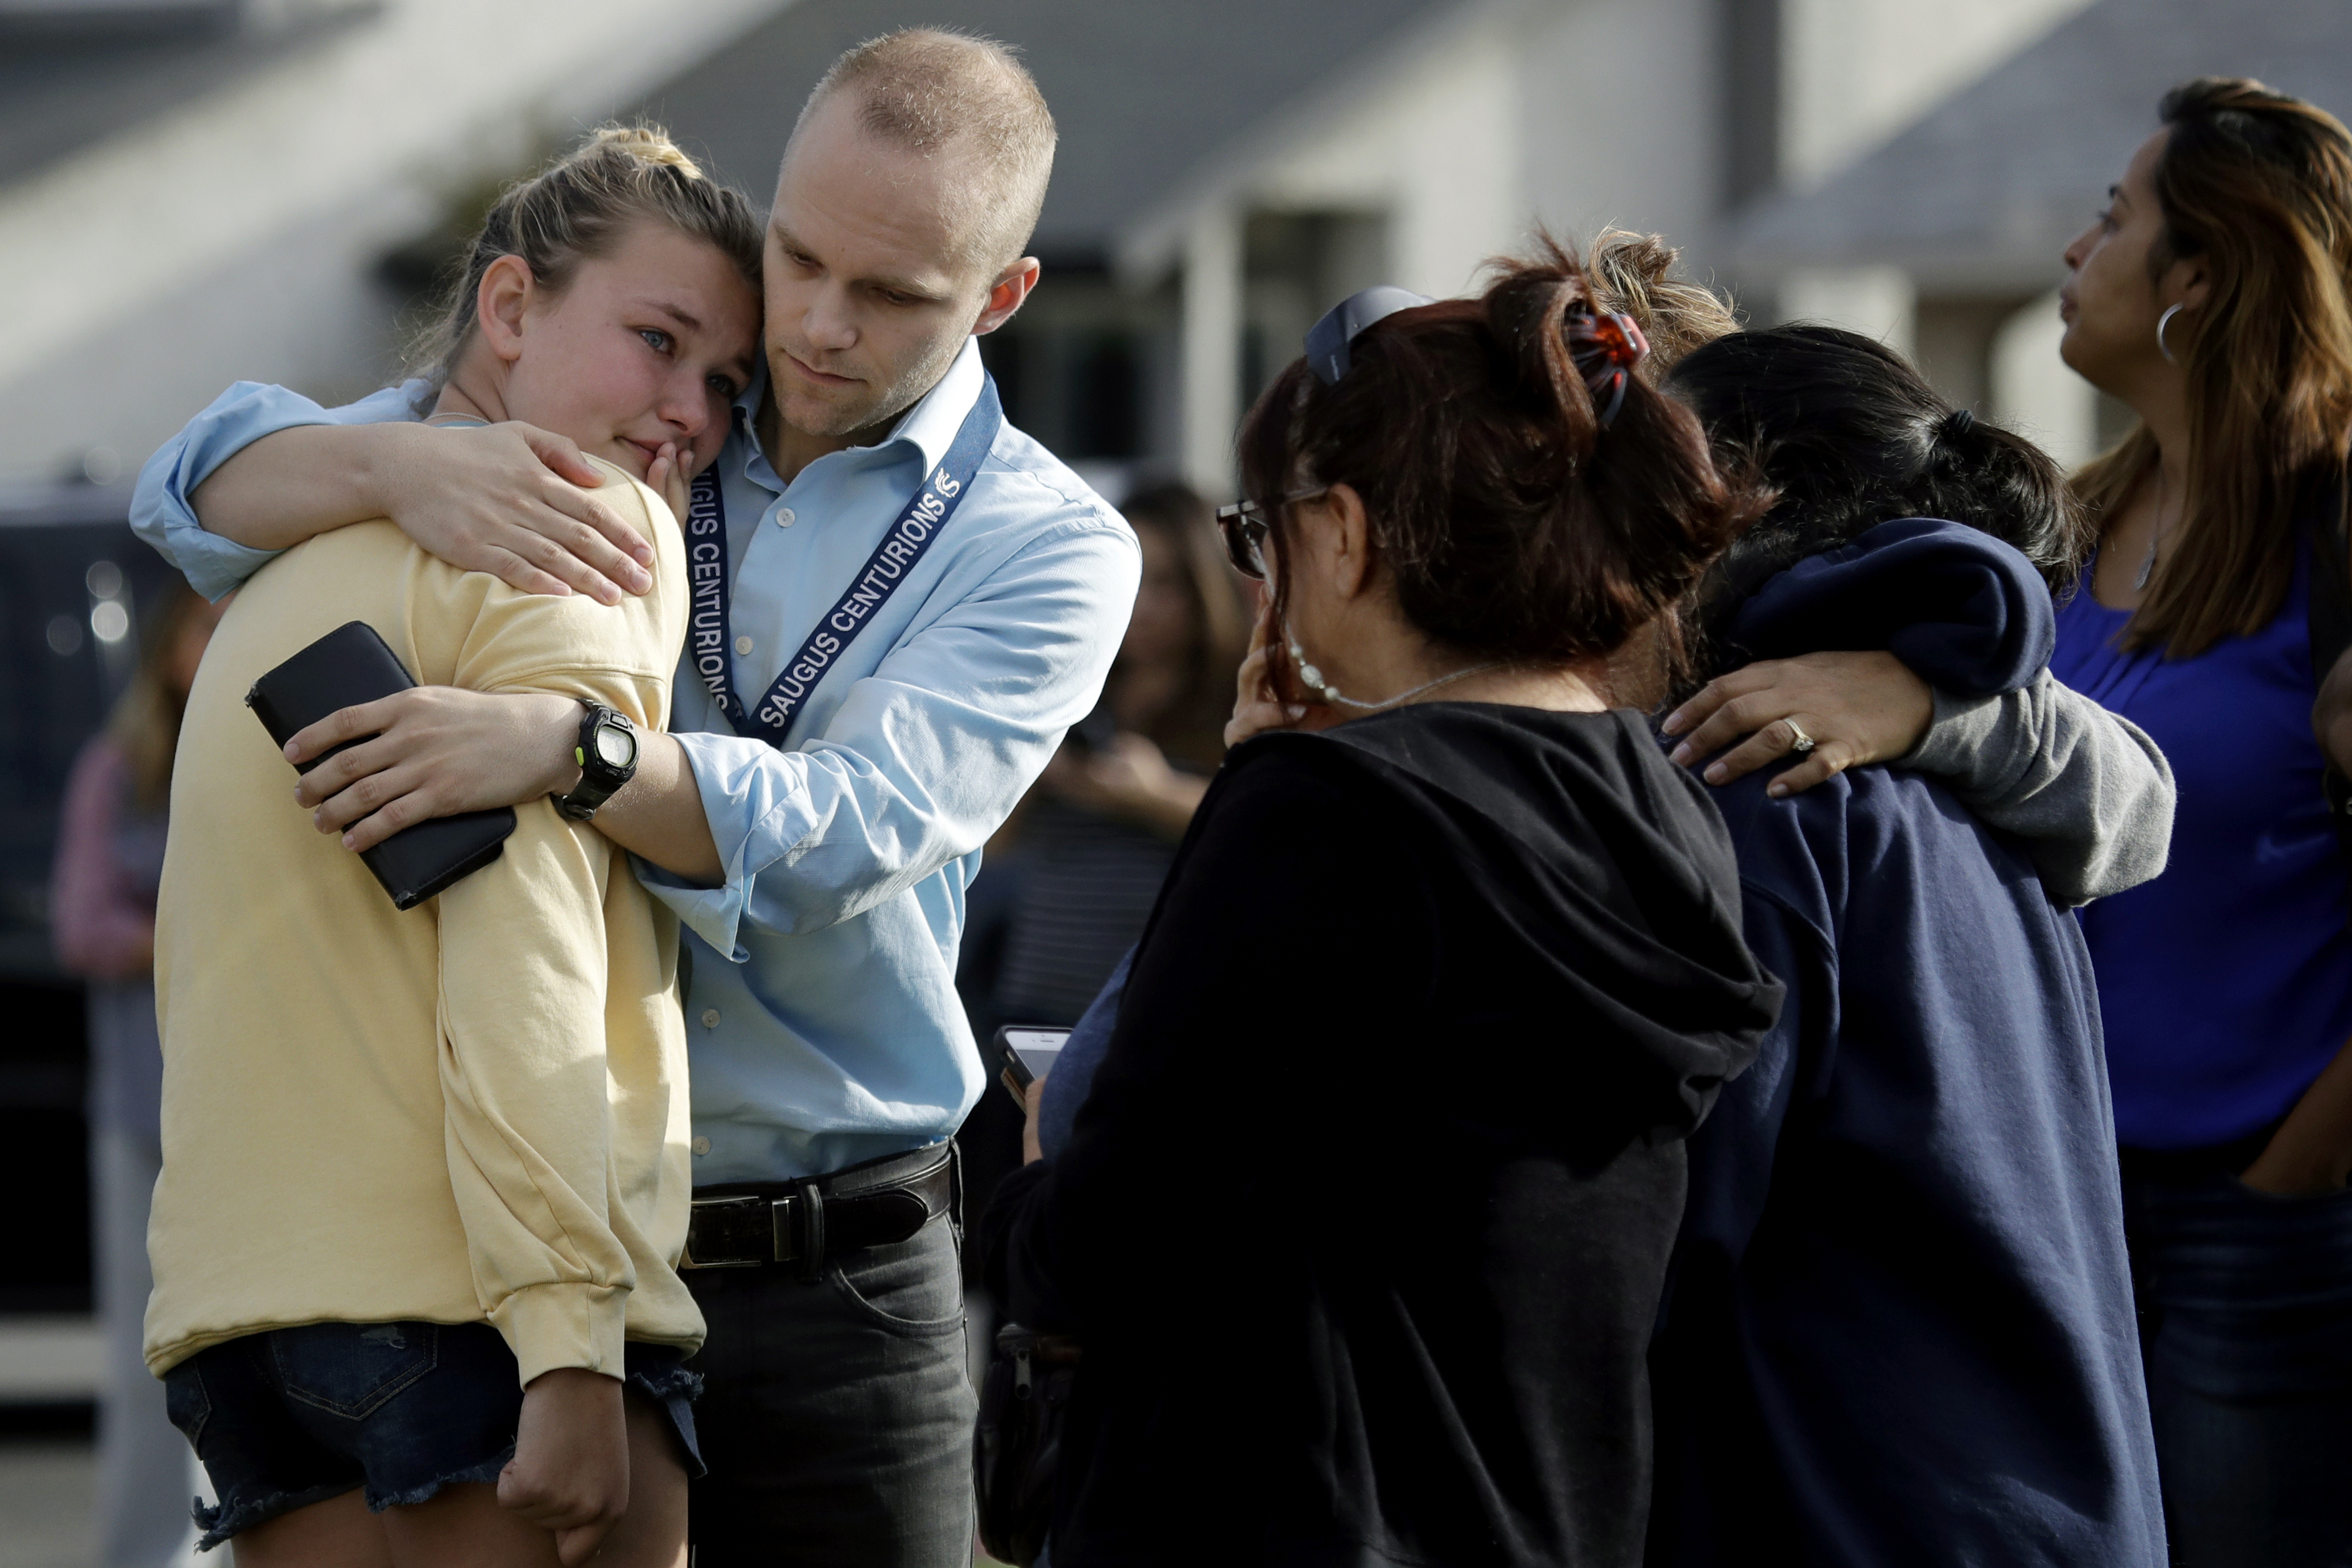 D.J. Hamburger, center in blue, a teacher at Saugus High School, comforts a student after reports of a shooting at the school on Nov. 14 in Santa Clarita, California.